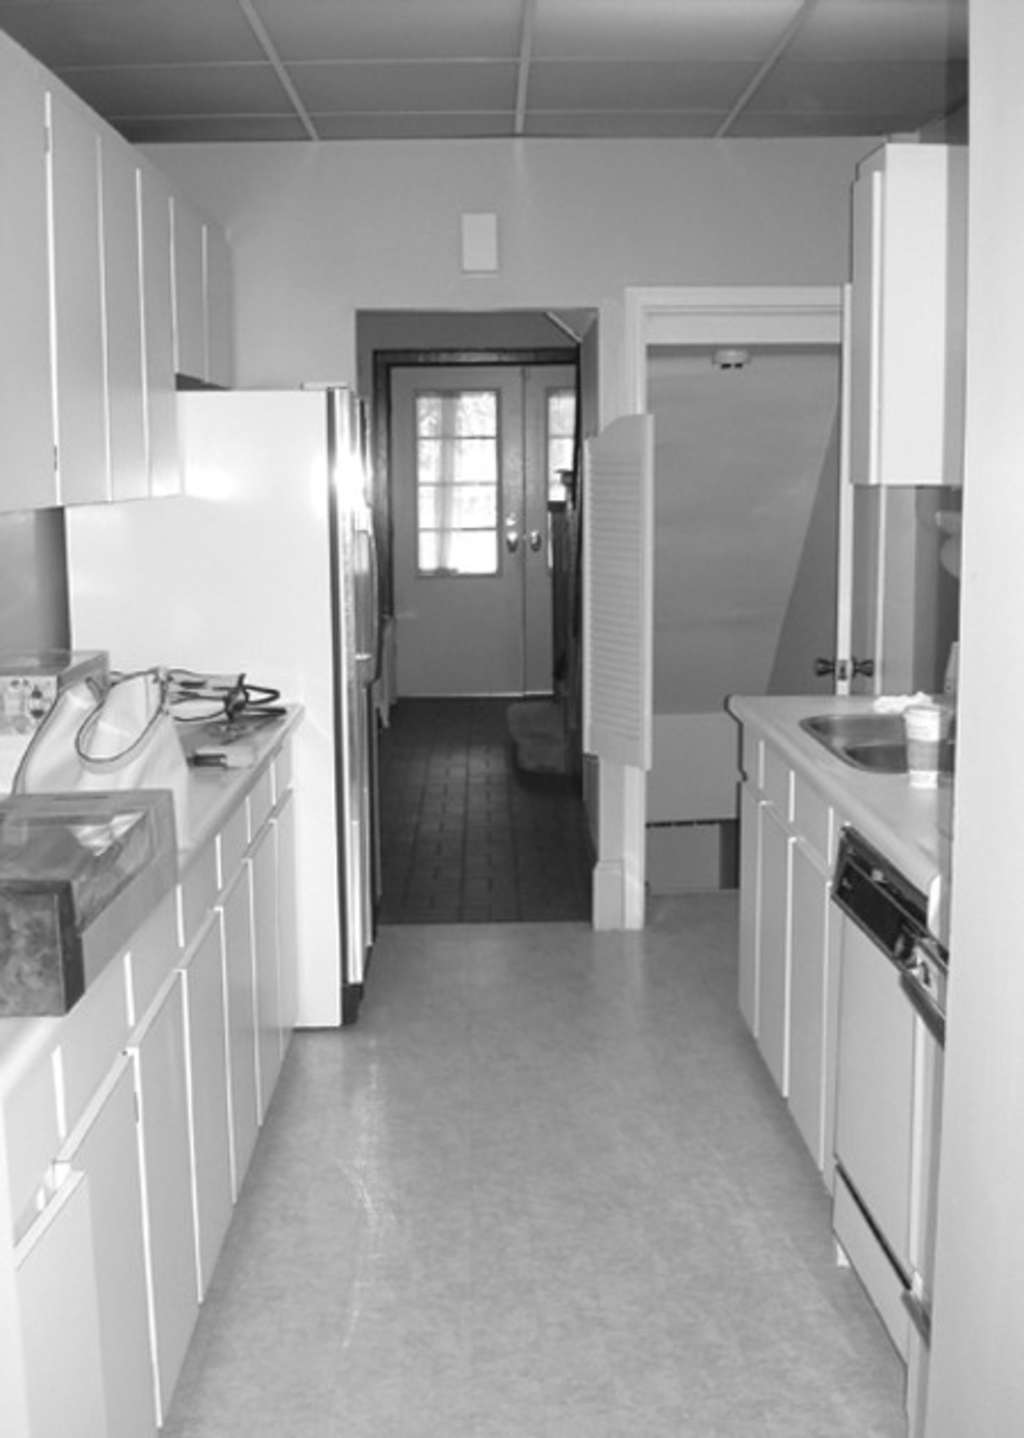 Opening Up The Doors: Before & After: Opening Up A Galley KitchenHouse & Home